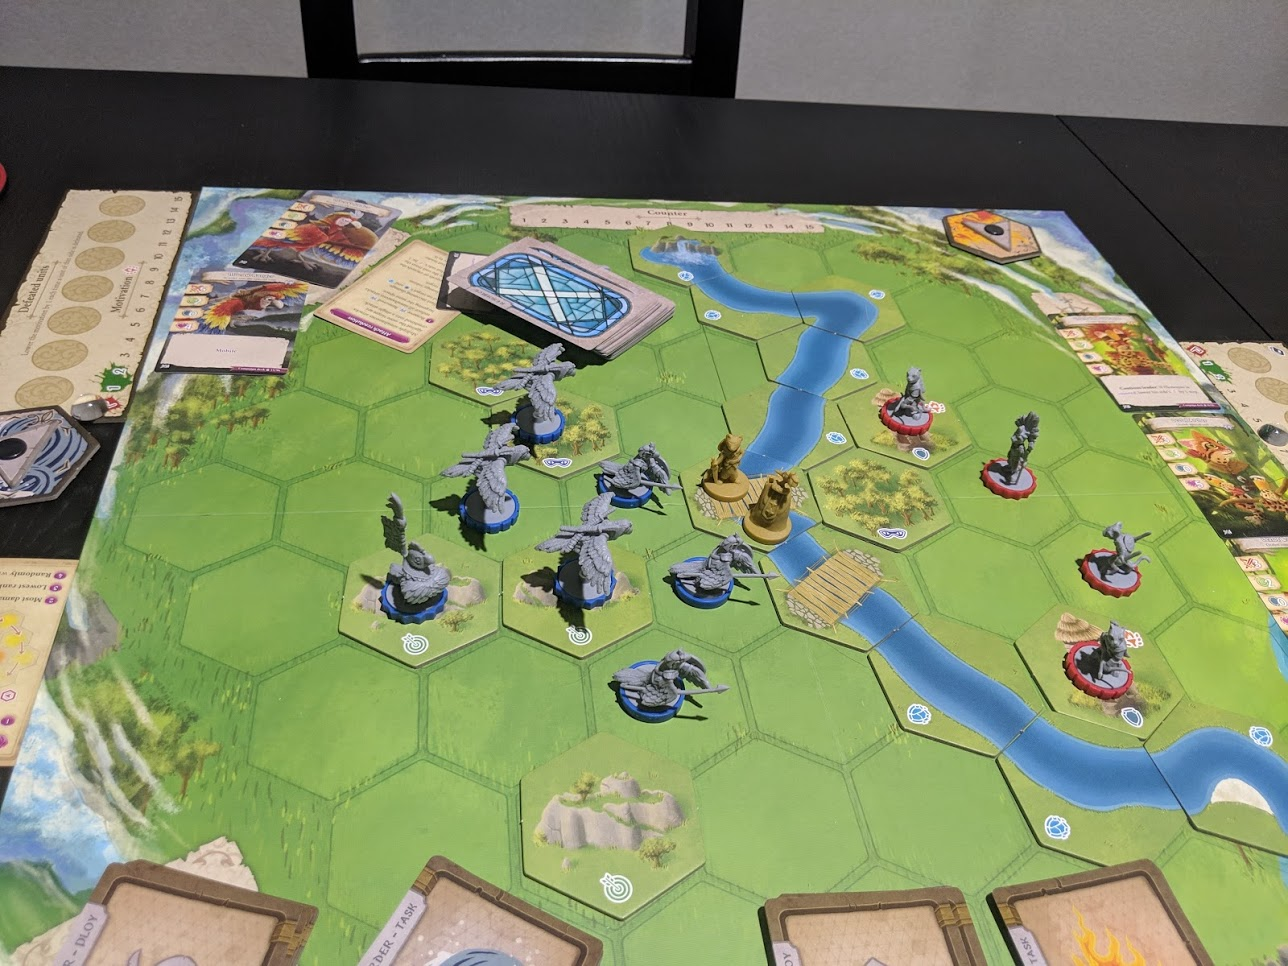 Dawn of the Peacemakers board set up, with the Macaw army to the left, Ocelot army to the right, with a river and two bridges separating them.